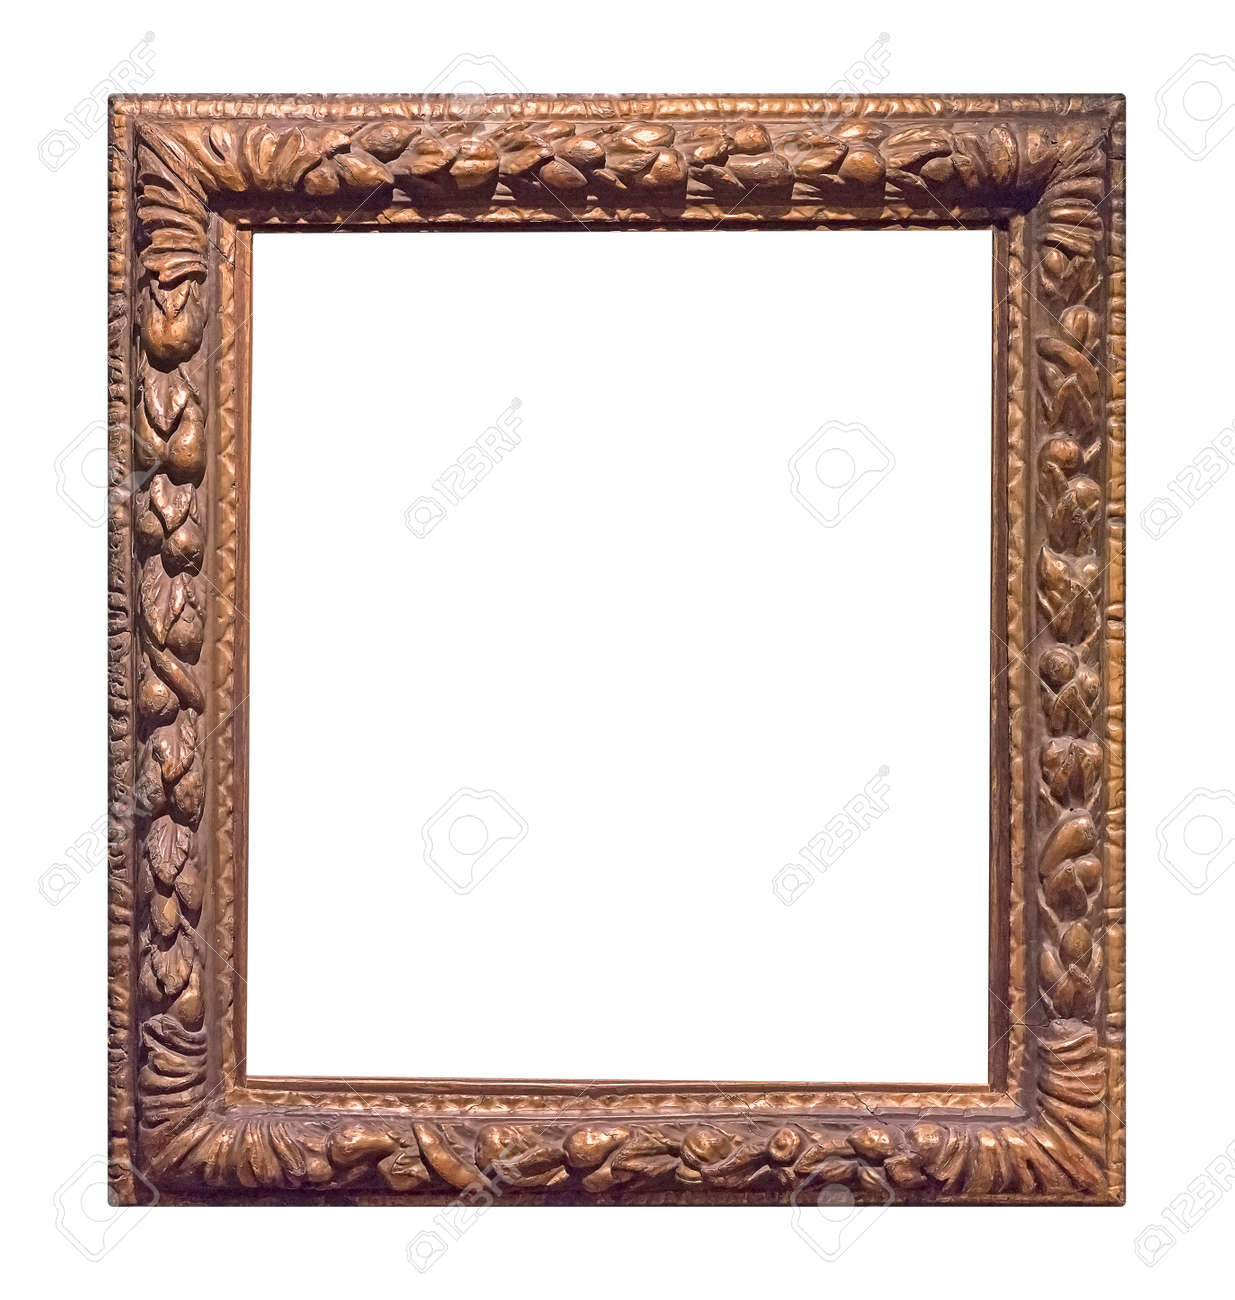 Golden frame for paintings, mirrors or photo isolated on white background - 154348066